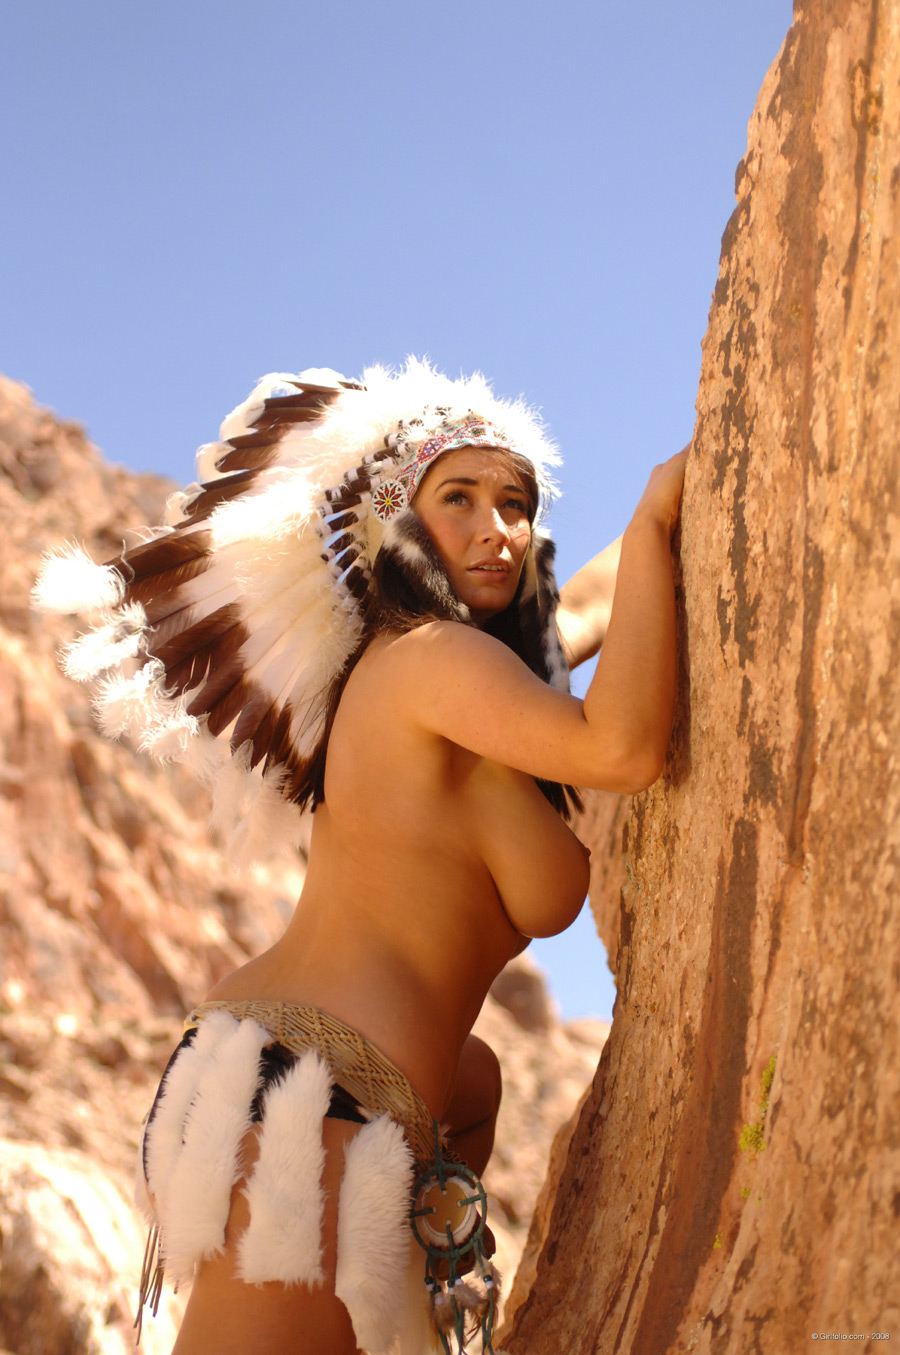 Discuss Peta todd naked hd for